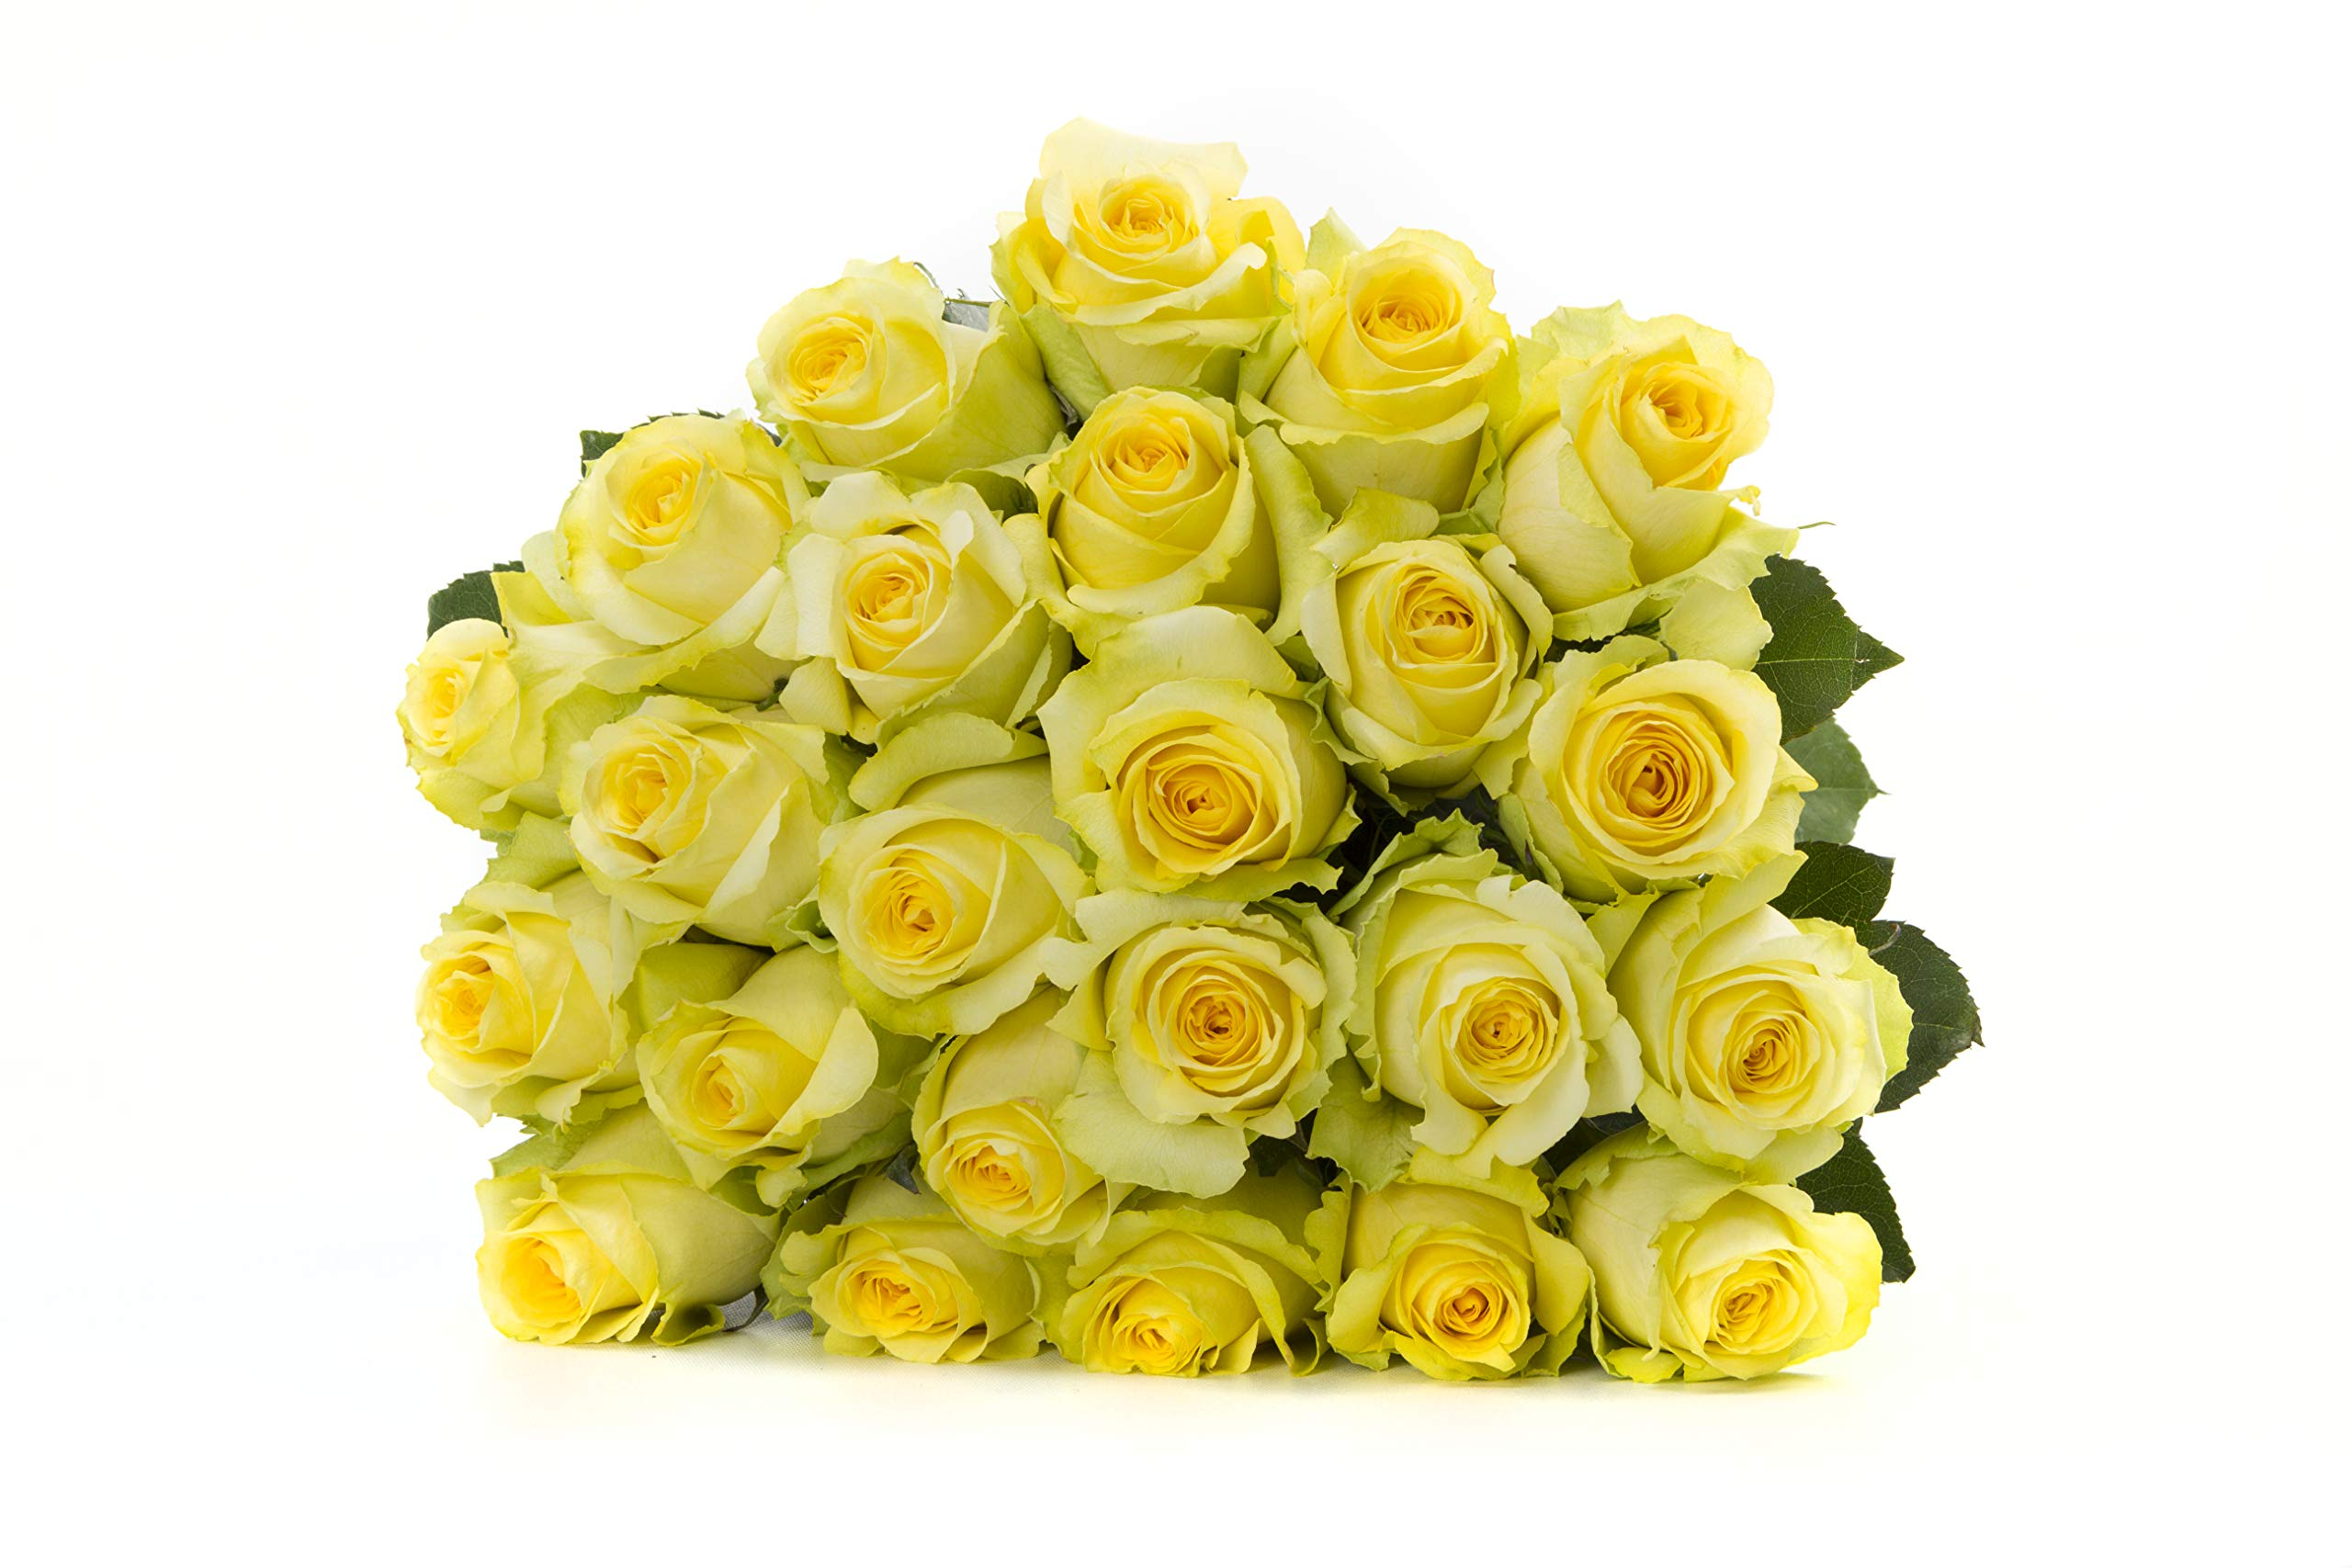 Martha Stewart Roses by BloomsyBox - Two Dozen Yellow Tara Roses Selected by Martha and Hand-Tied, Long Vase Life